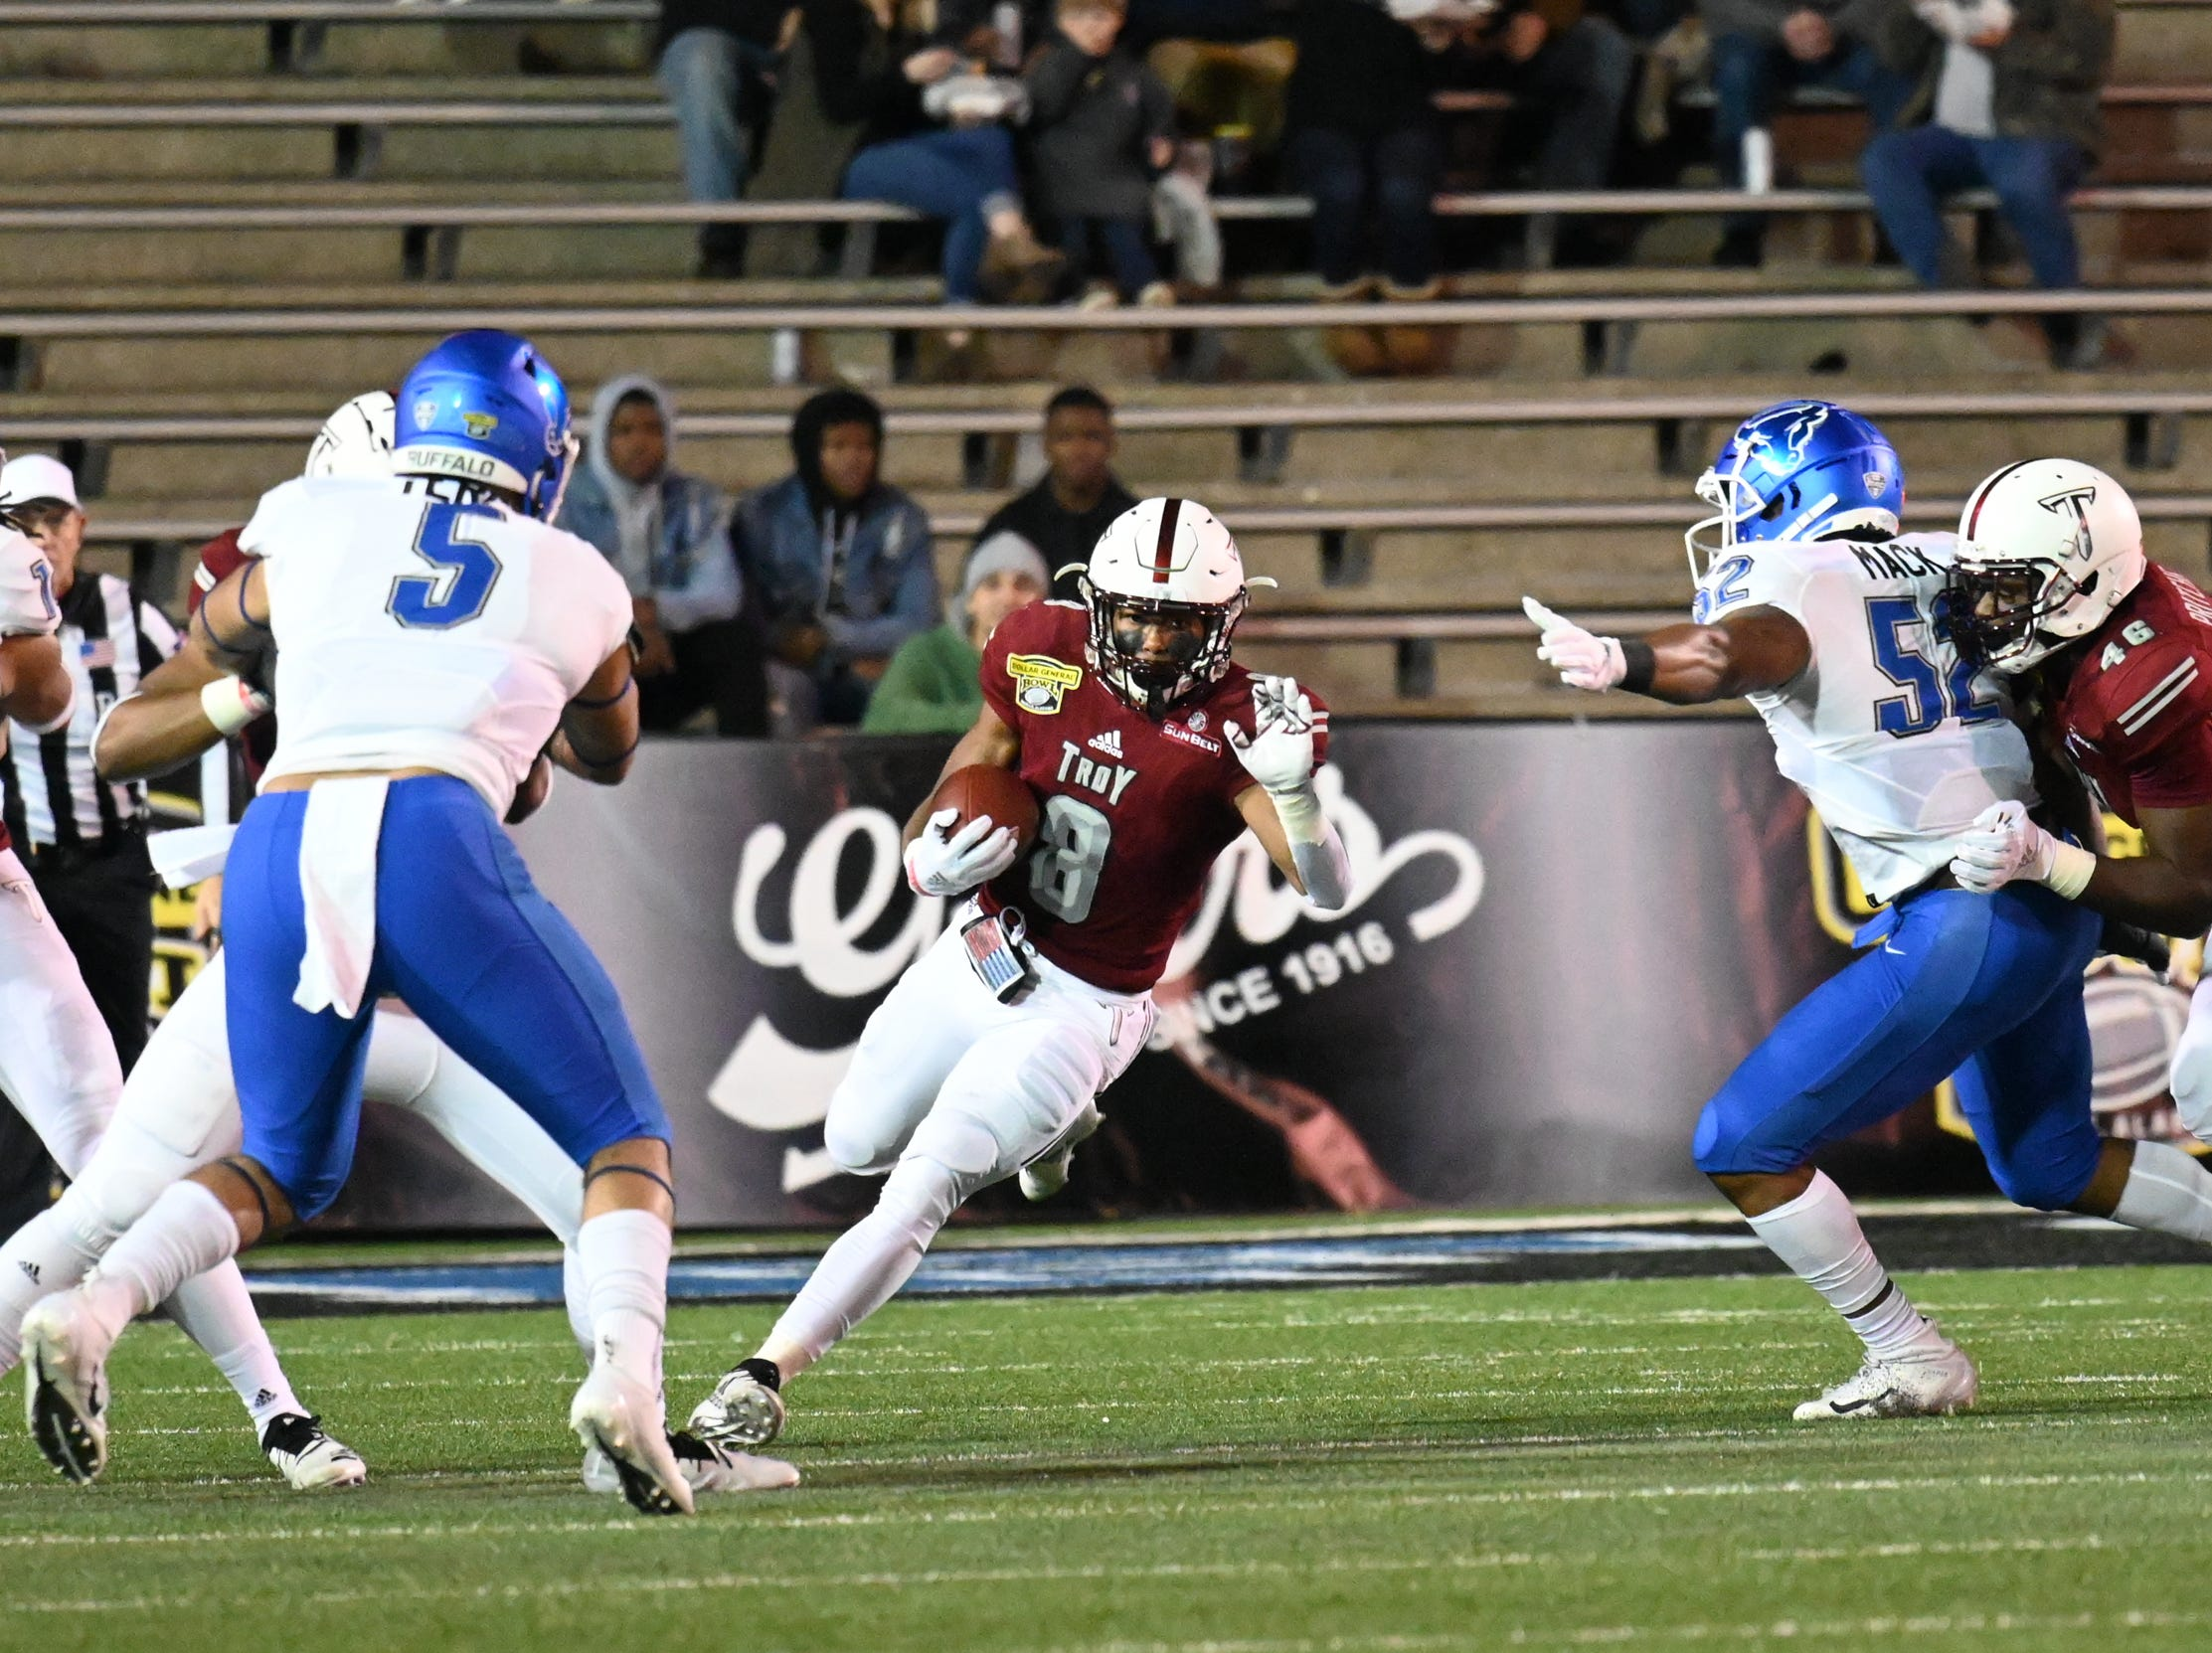 Troy Trojans cornerback Marcus Jones (8) runs the ball up the middle against Buffalo during the Dollar General Bowl held at Ladd-Peebles Stadium in Mobile, on Saturday, Dec. 22, 2018.